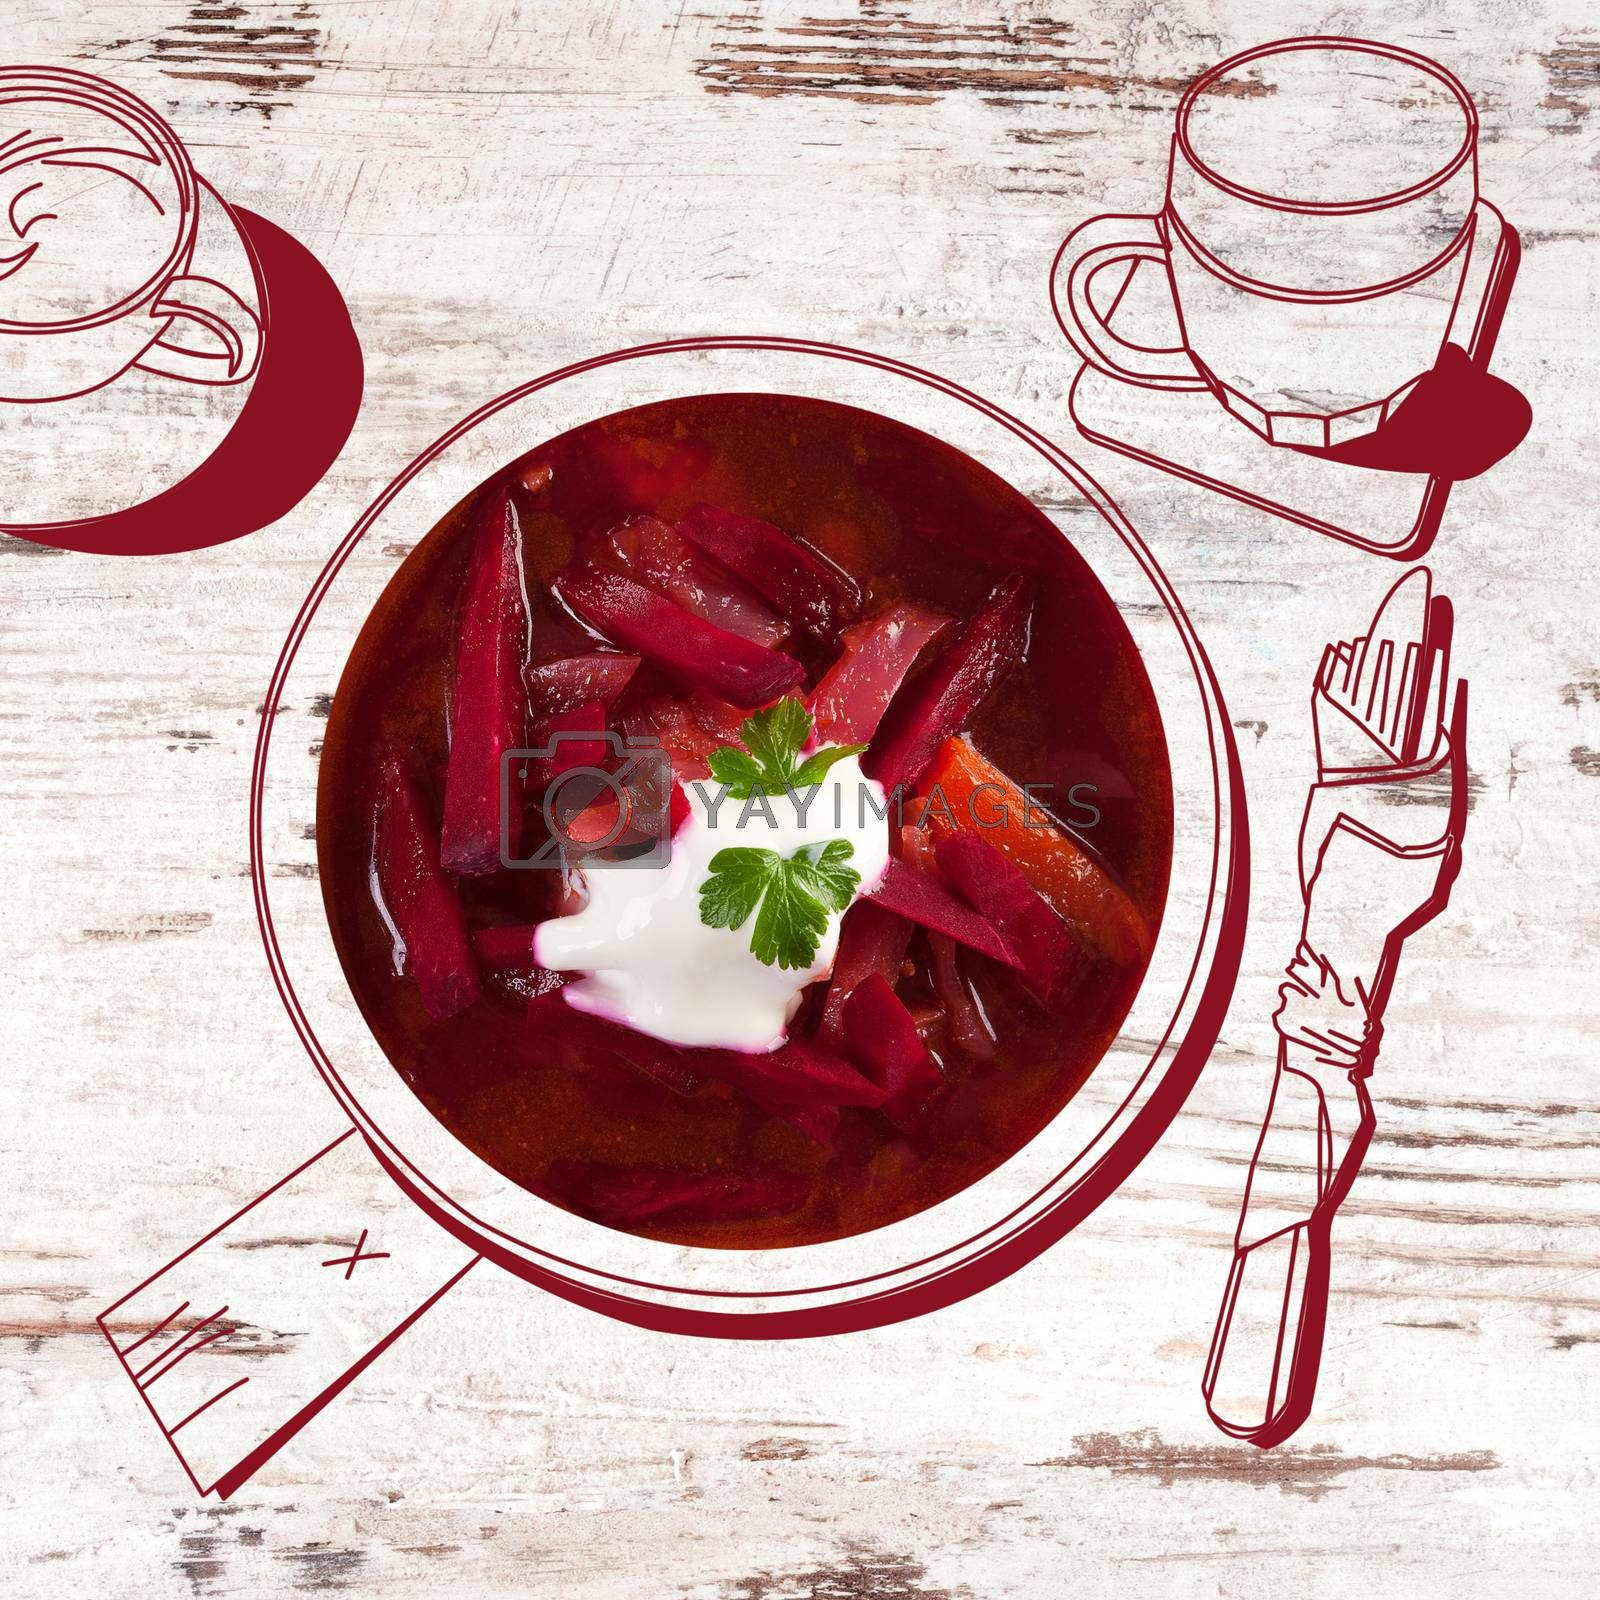 Delicious borsch soup. Fine dining, exquisite luxurious gastronomy background.